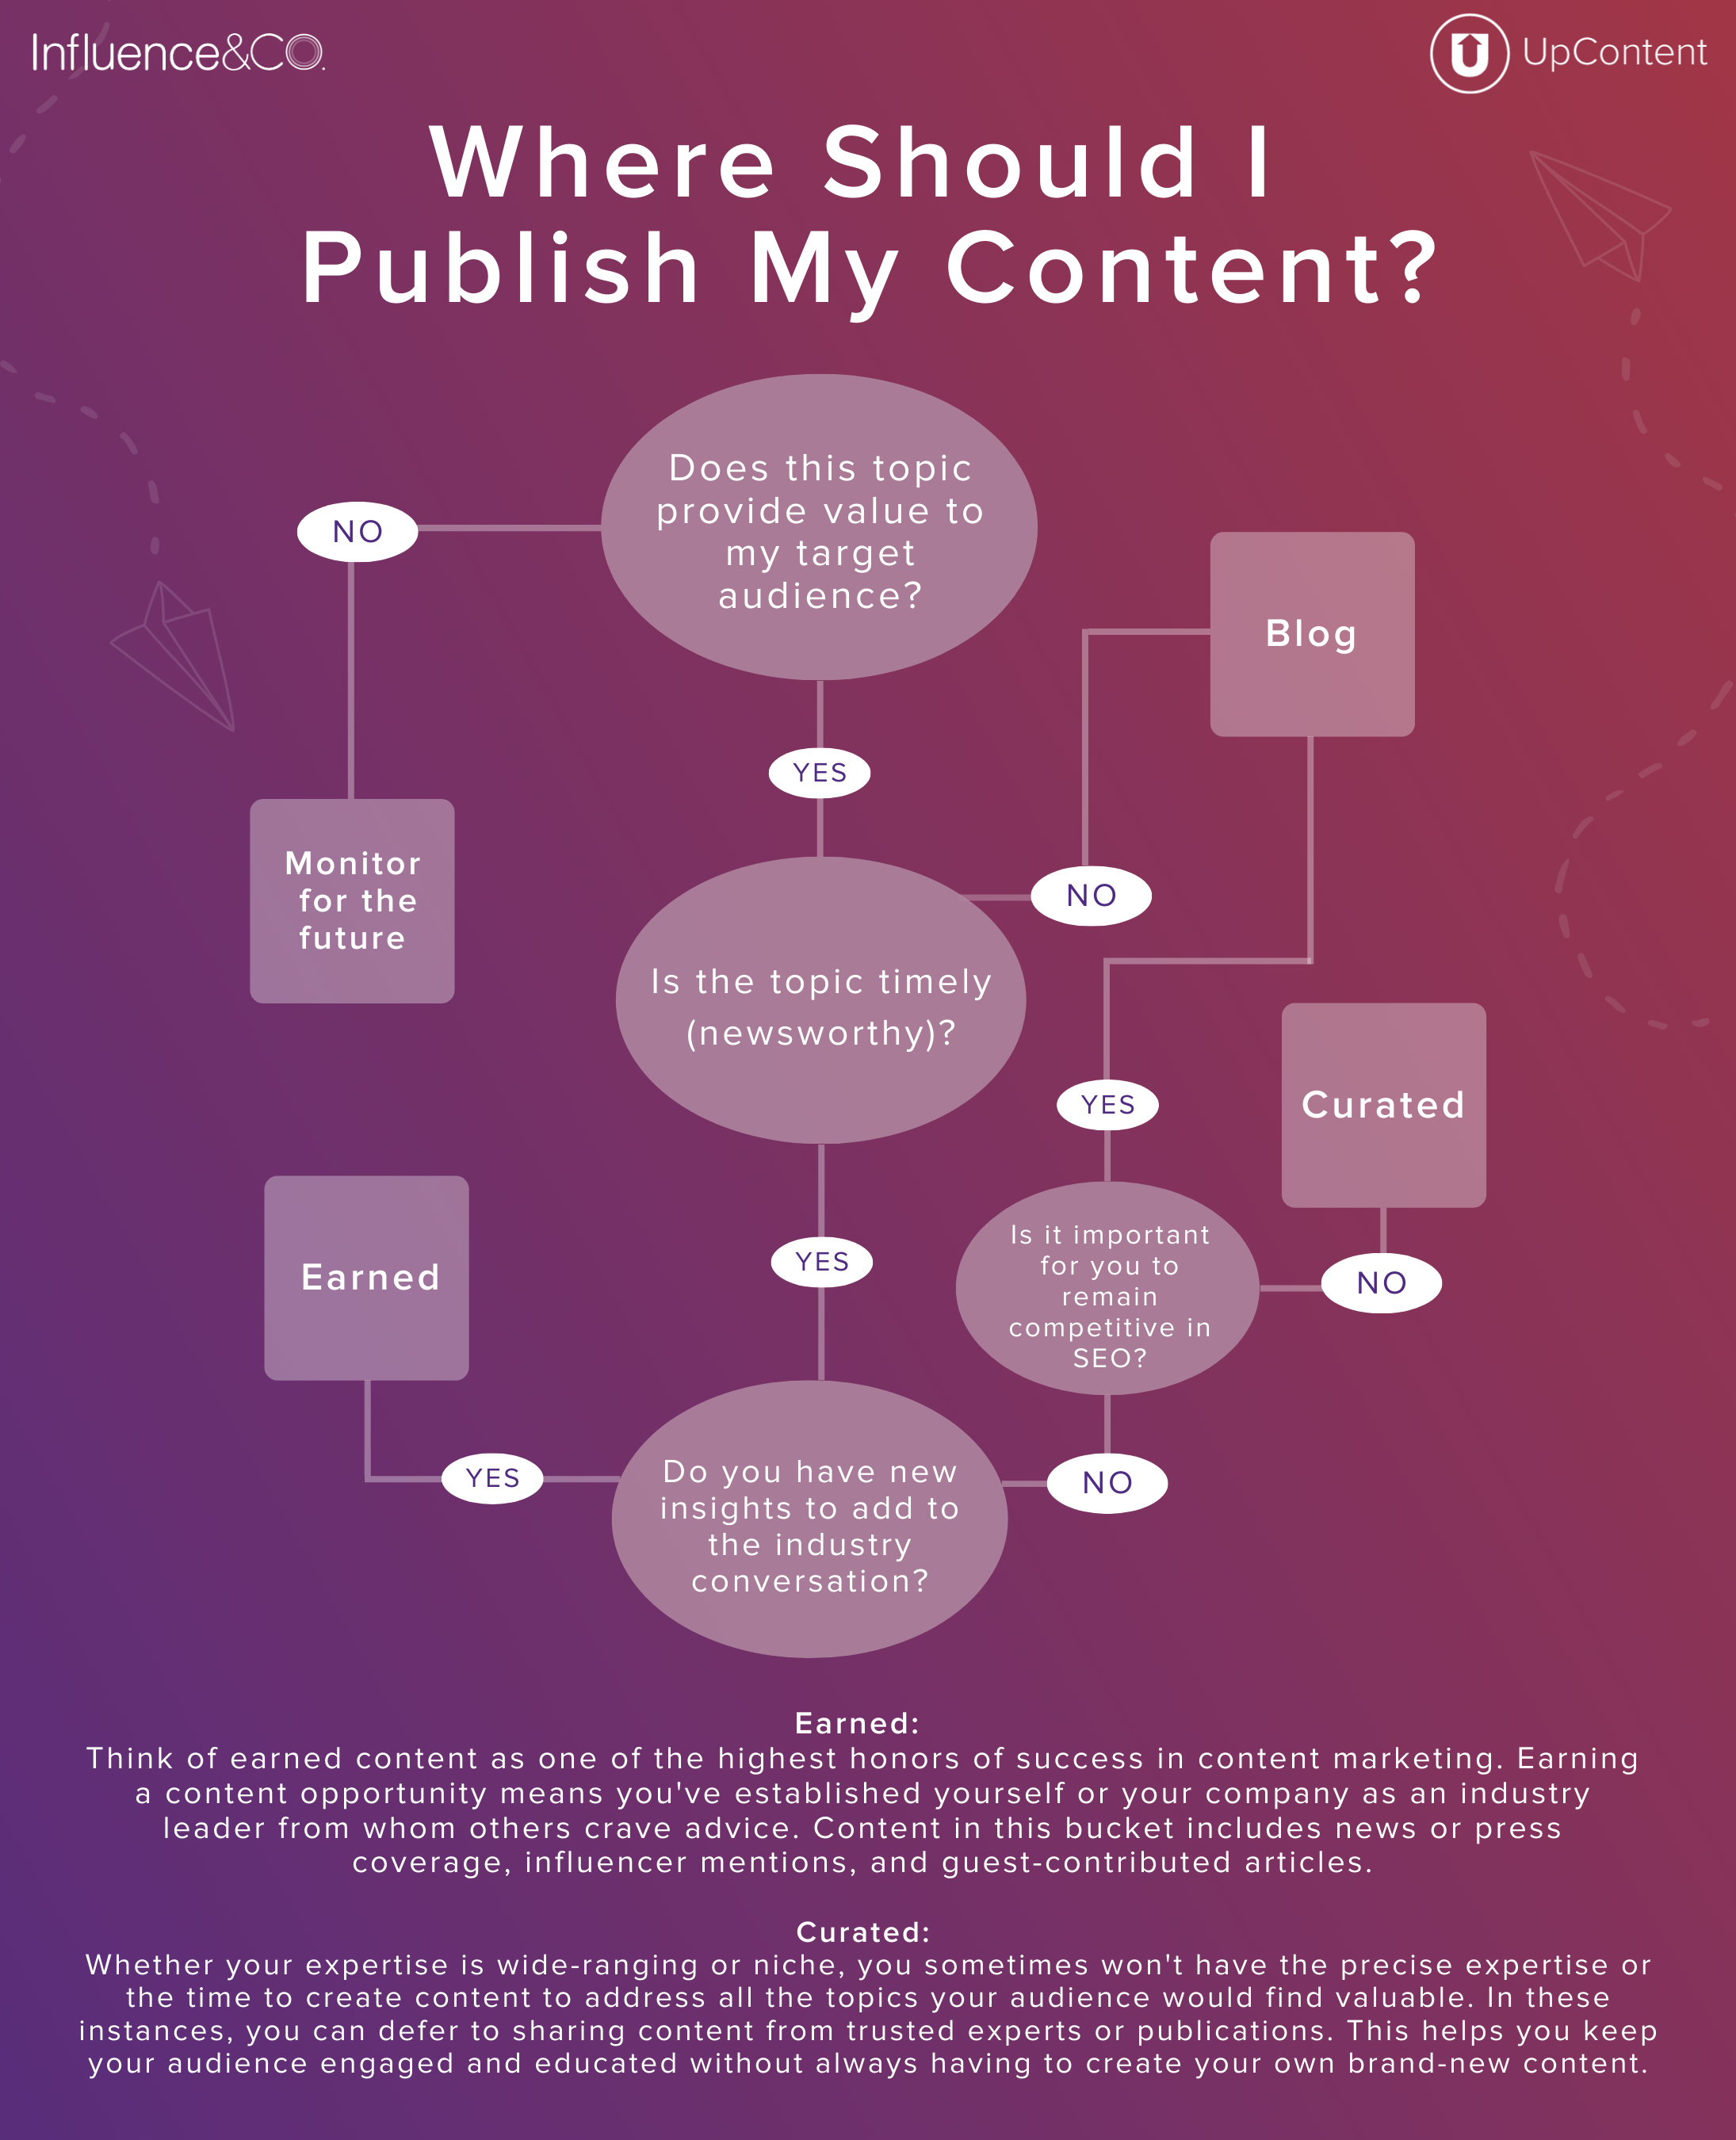 Where should I publish my content?